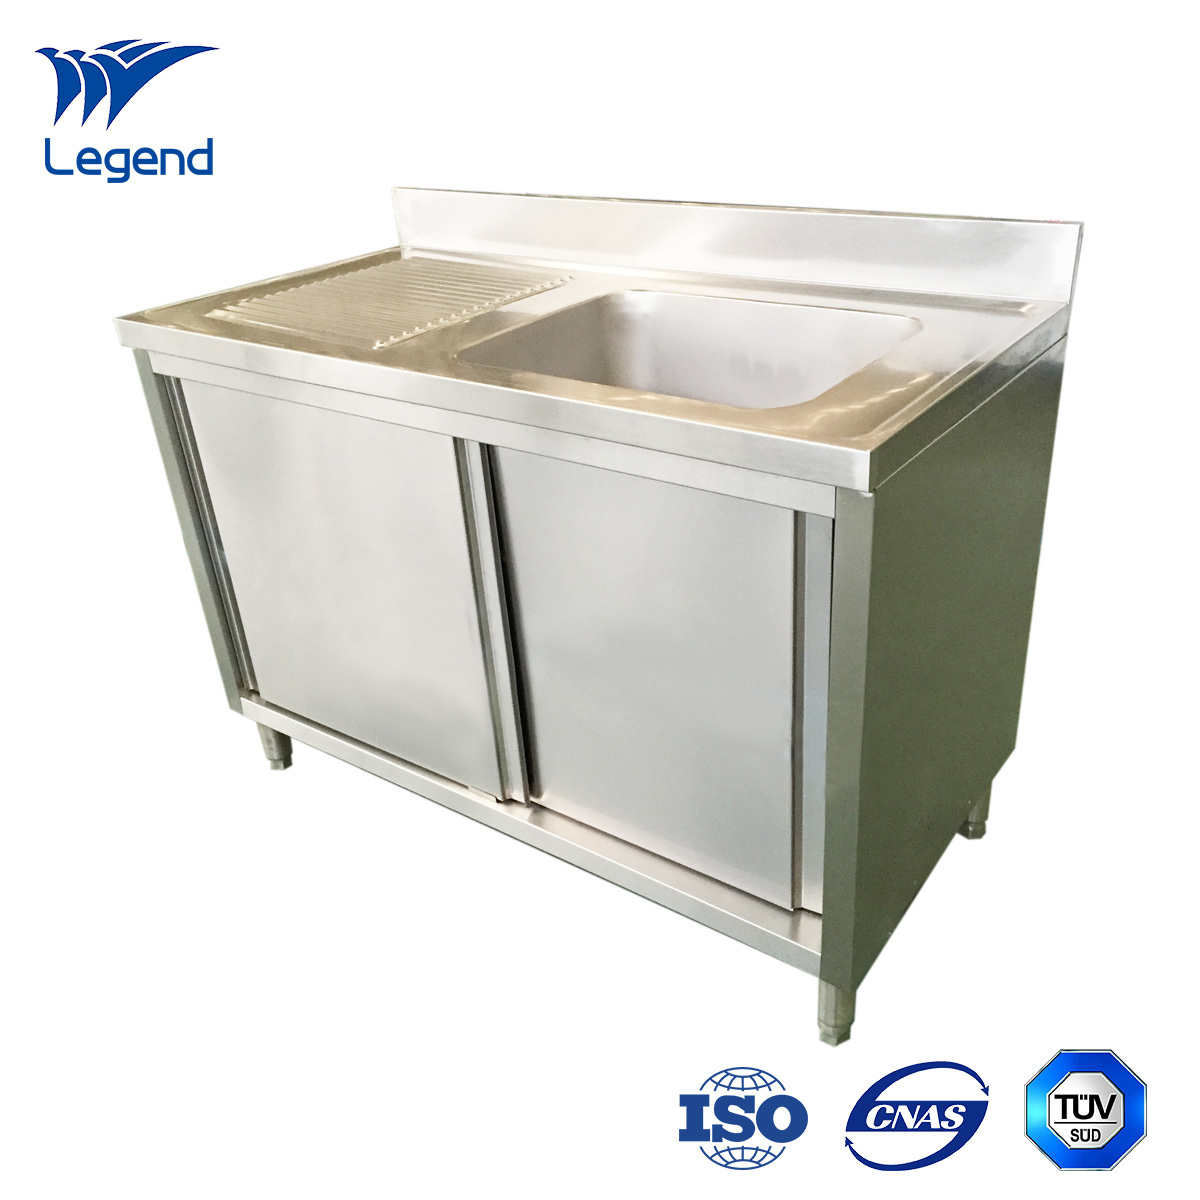 Commercial Stainless Steel Sink Cabinet